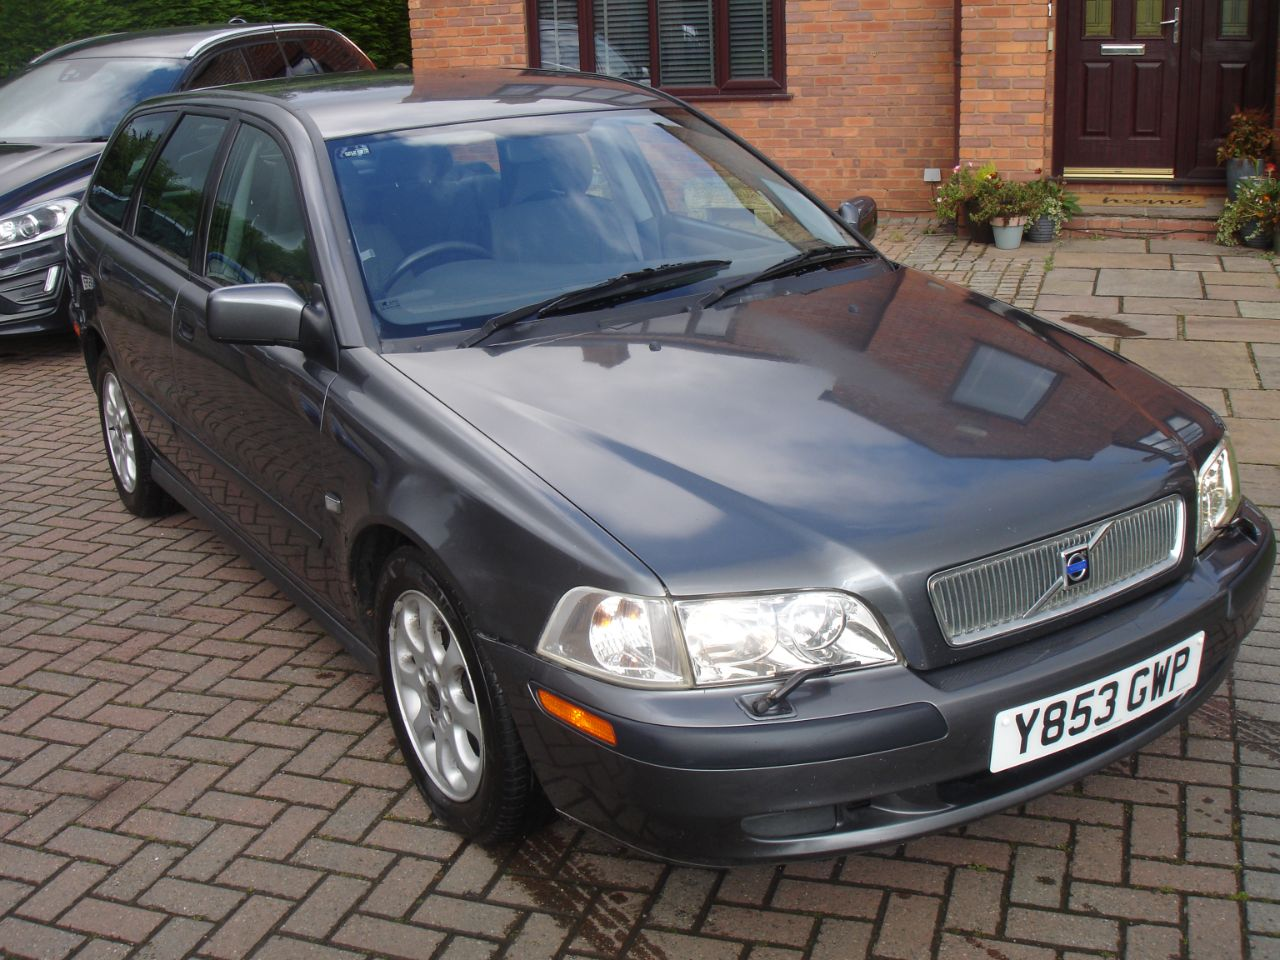 Volvo V40 1.9 D Estate 115ps Estate Diesel Metallic Grey at Level Pitch Selby